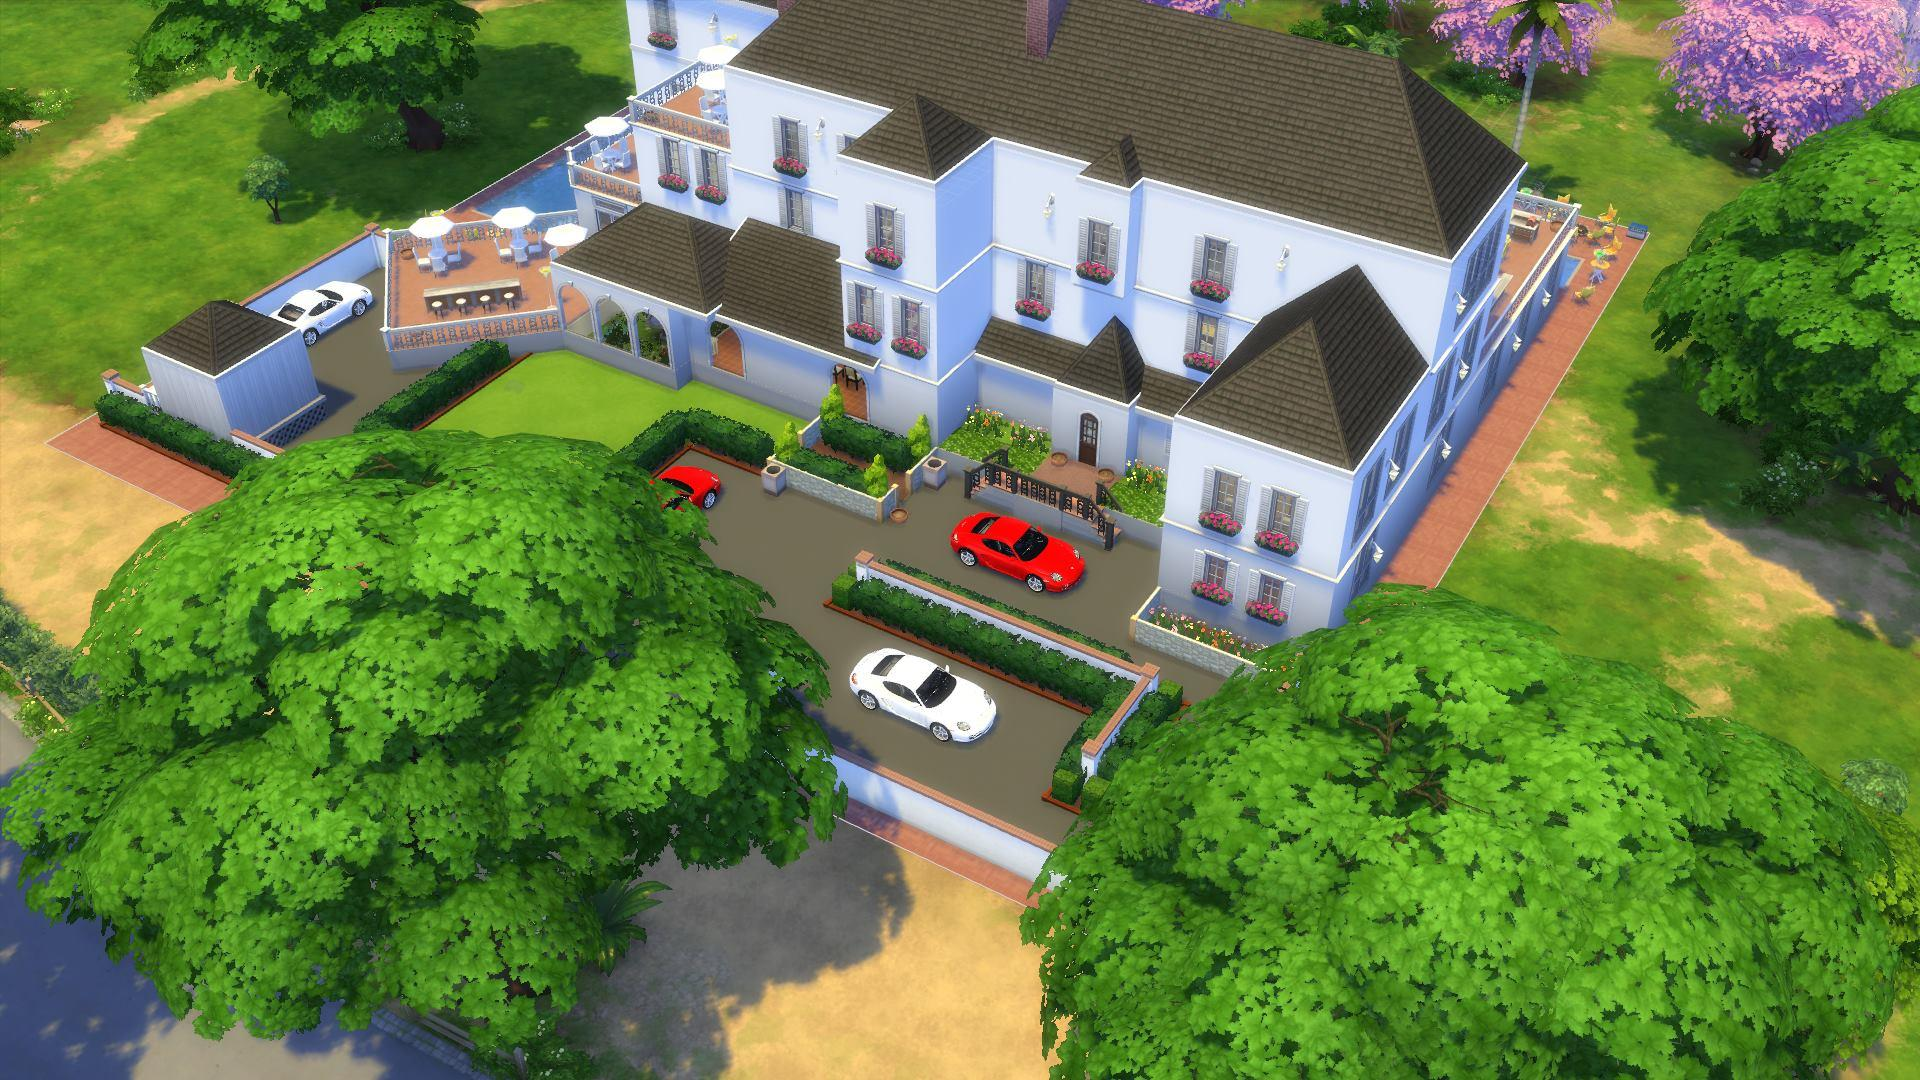 Mes cr ation sims 4 les sims for Maison sims 4 piscine